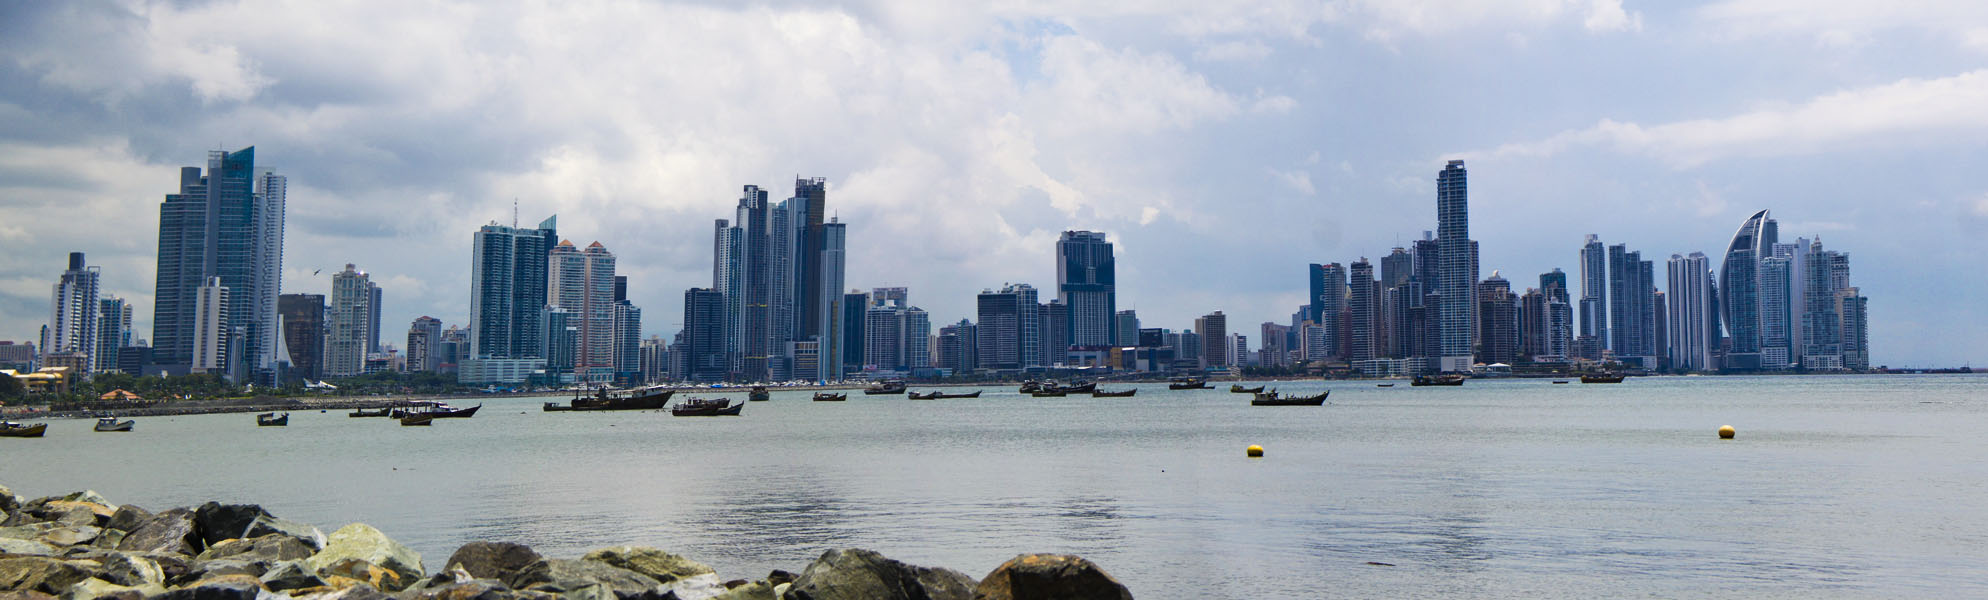 Blog Archive Panama City And The Panama Canal